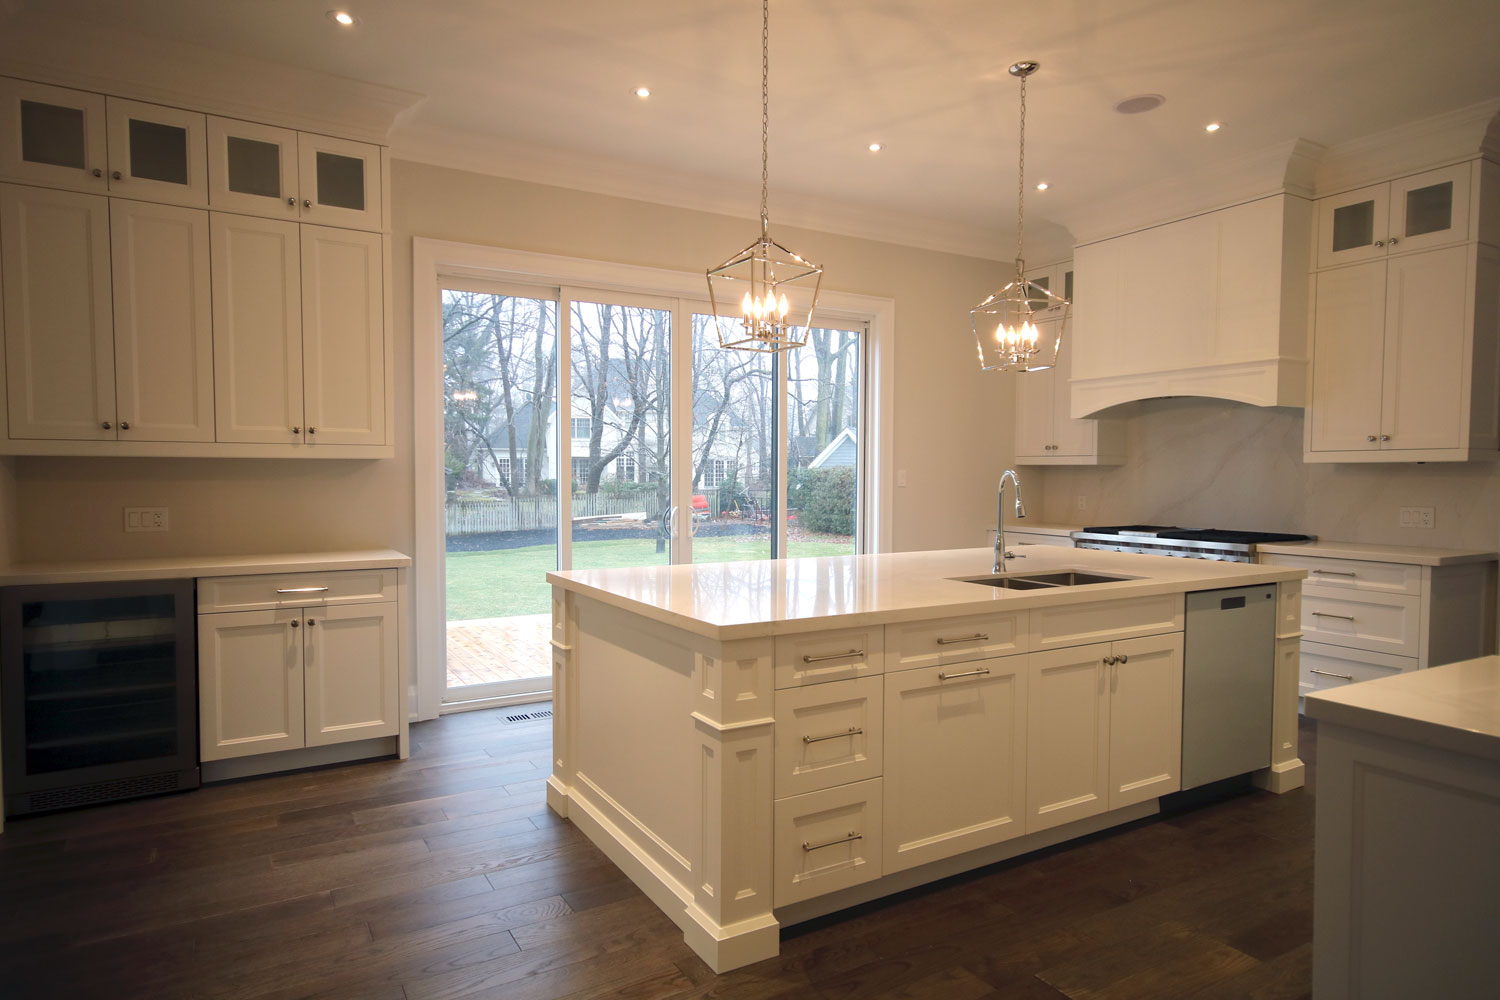 How Much Do Custom Kitchen Cabinets Cost?